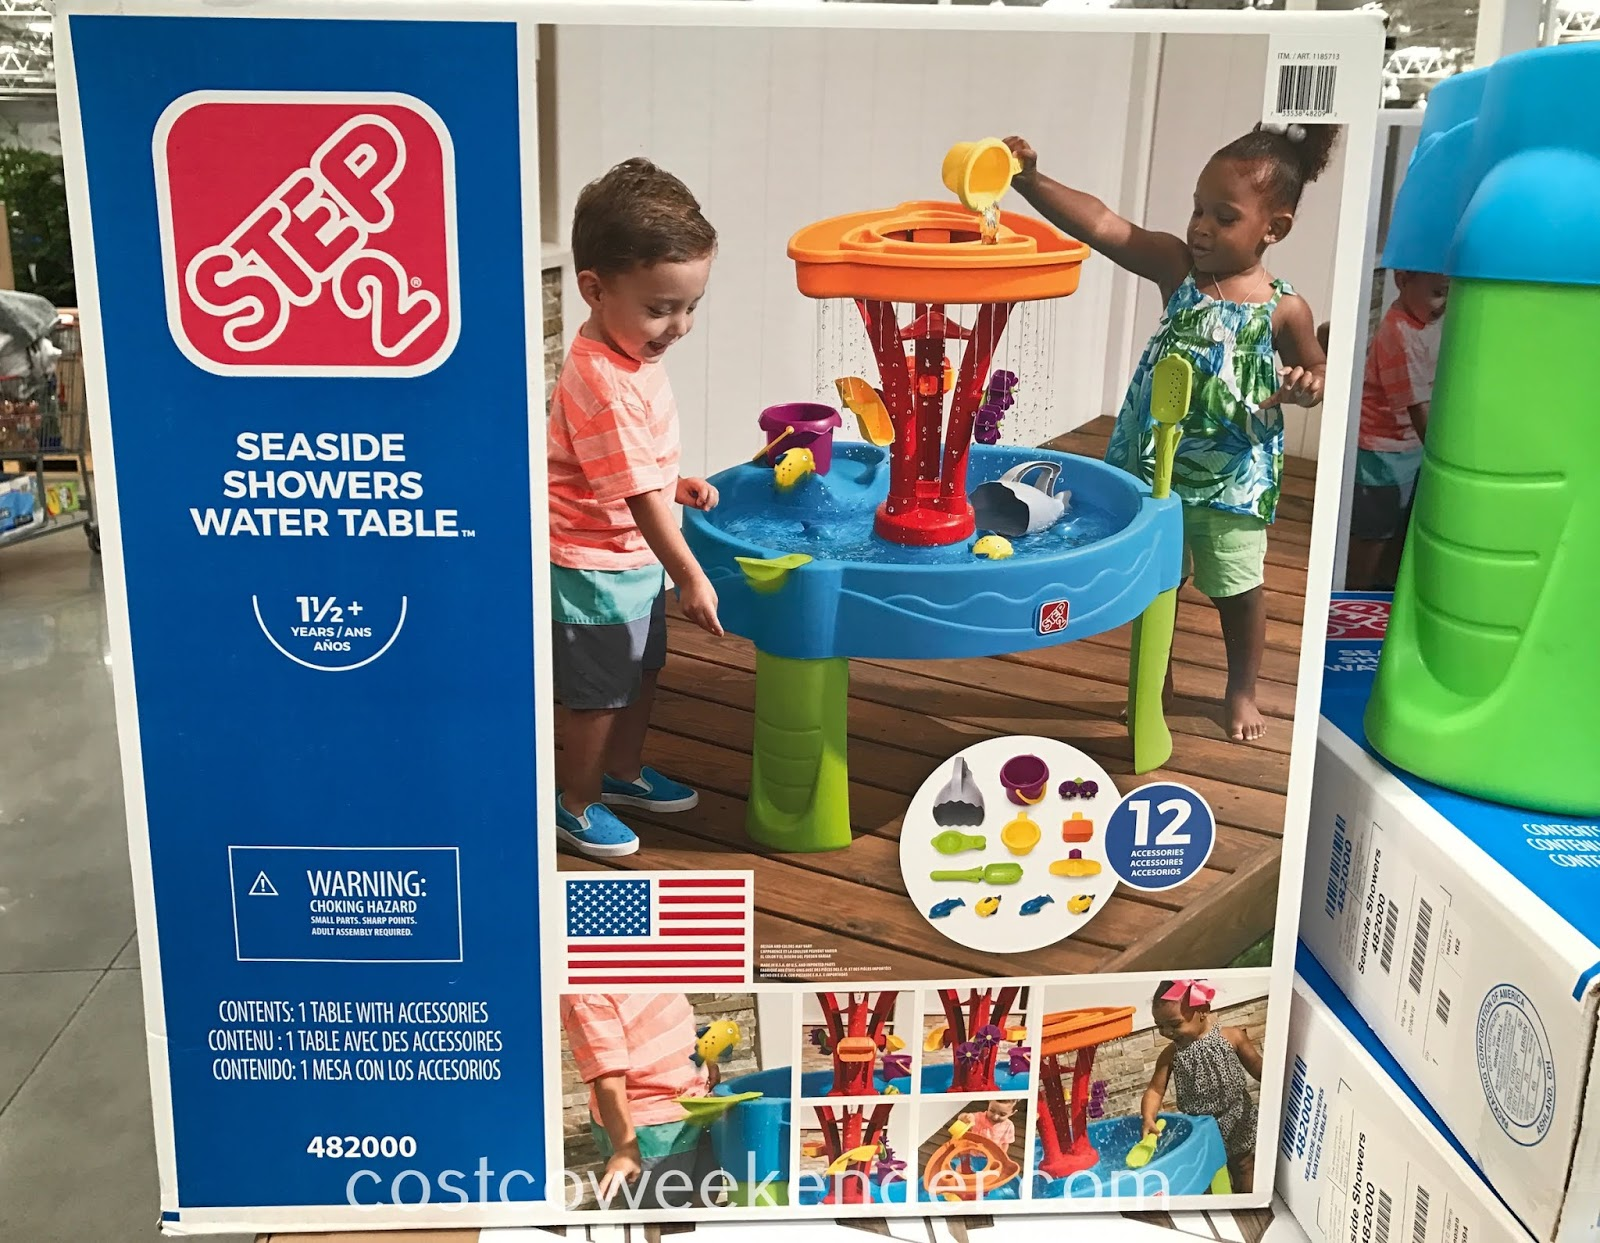 Costco 1185713 - Keep your kid busy for hours with the Step2 Seaside Showers Water Table